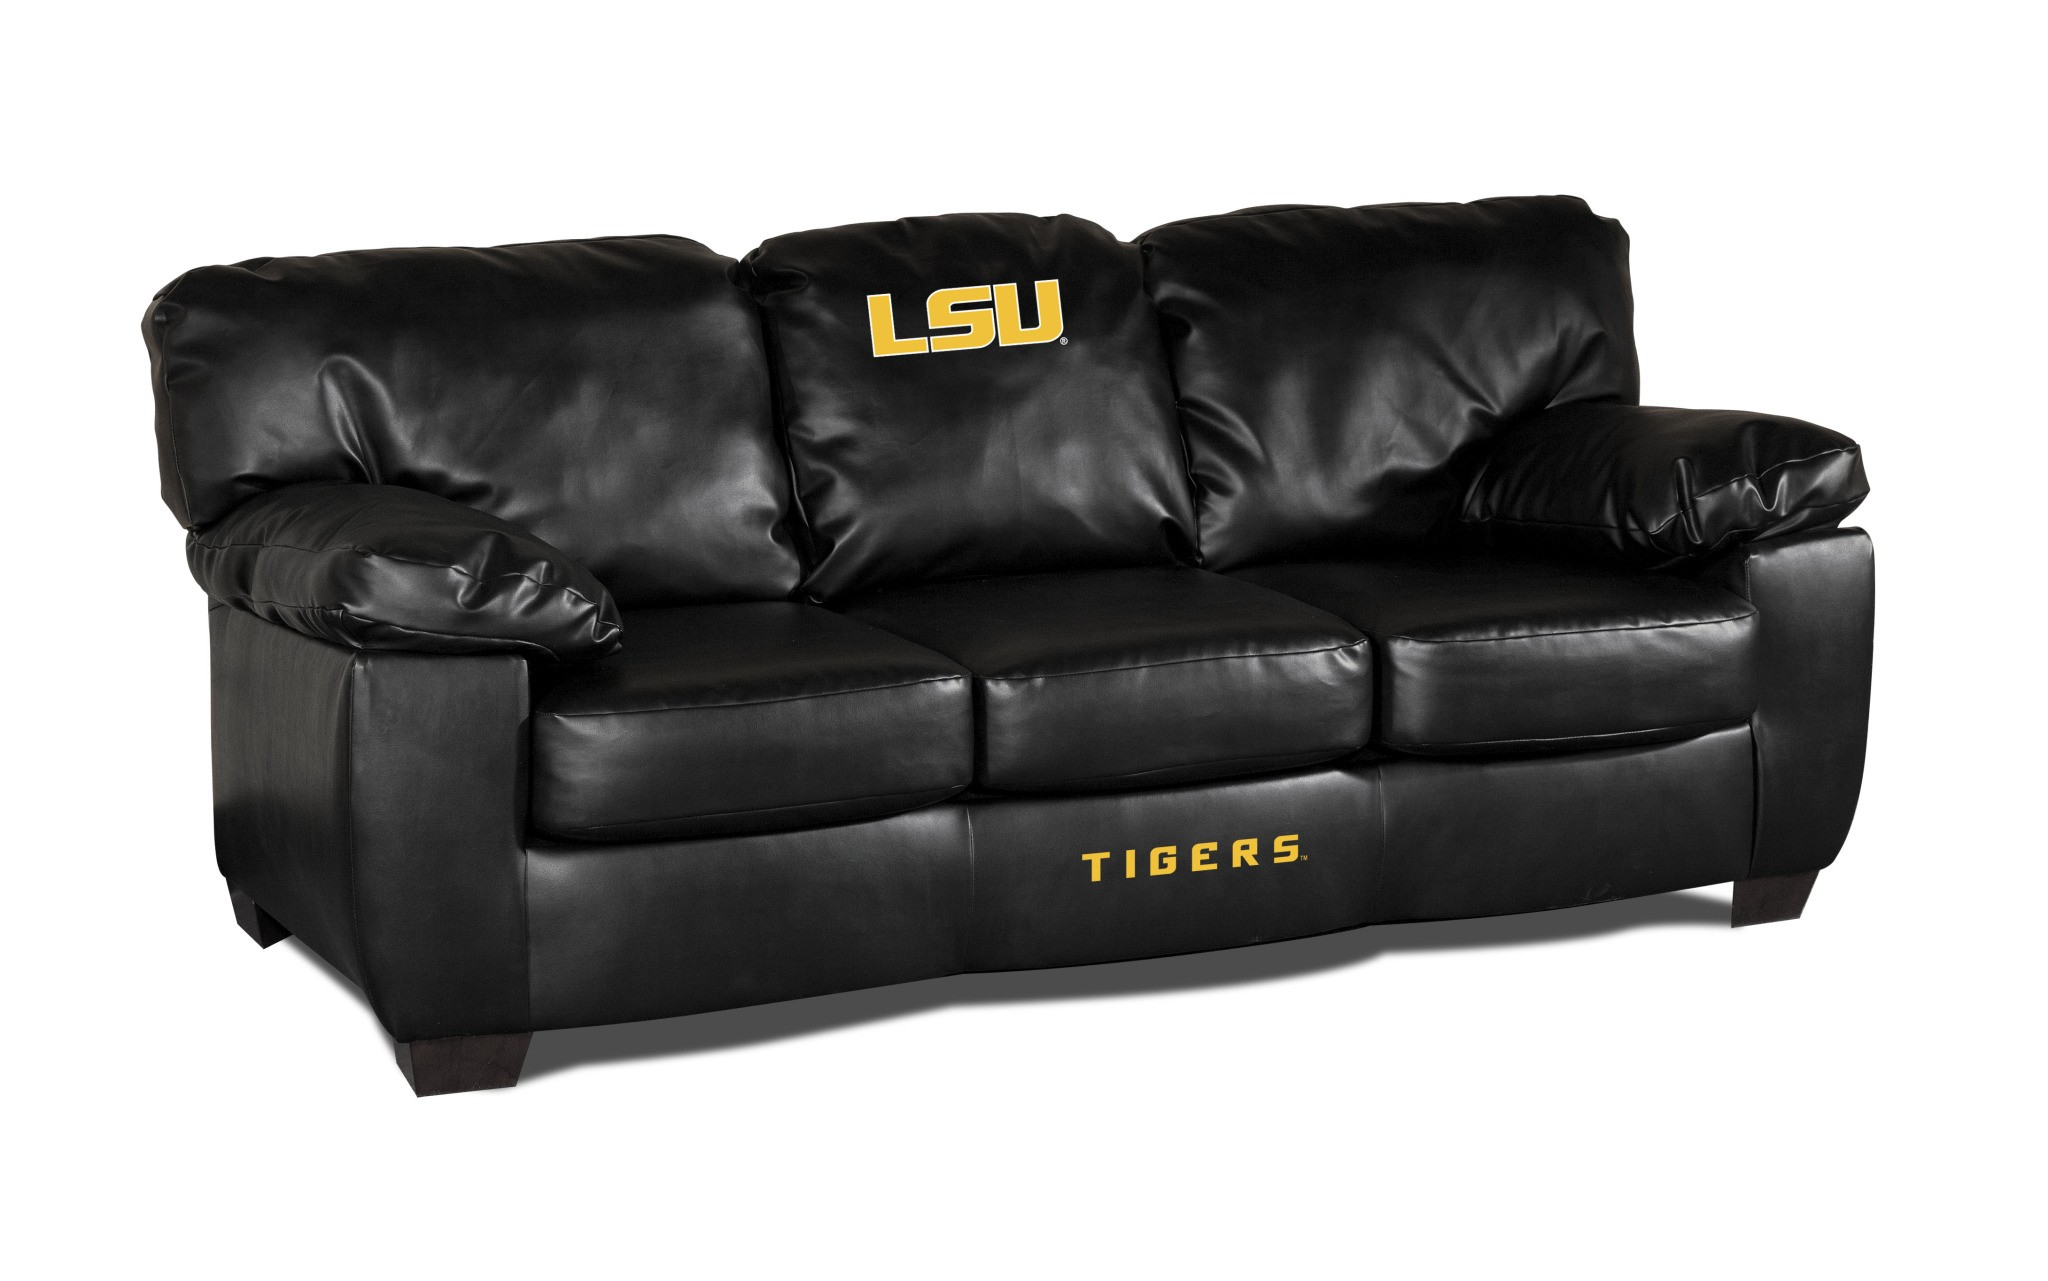 Louisiana State University Classic Leather Sofa - 79-6005 - Facilities Management Bar Furniture Bar Chairs 79-6005